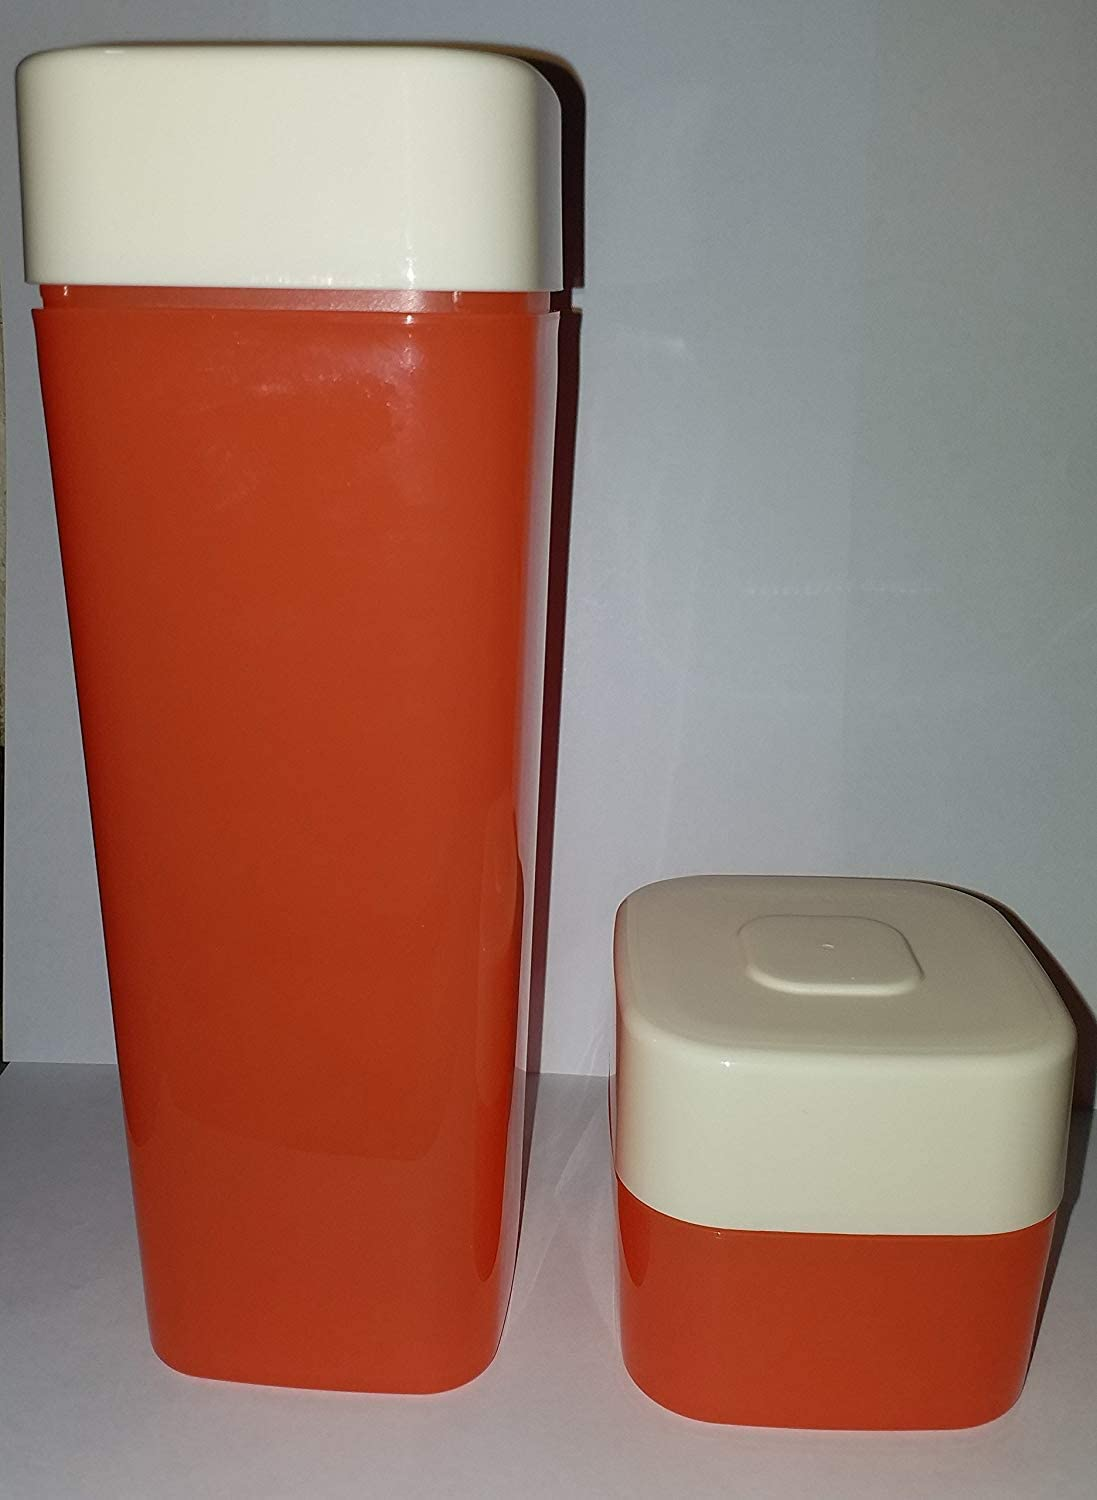 Tupperware kitchen storage Containers - Shelf Savers Large & Small